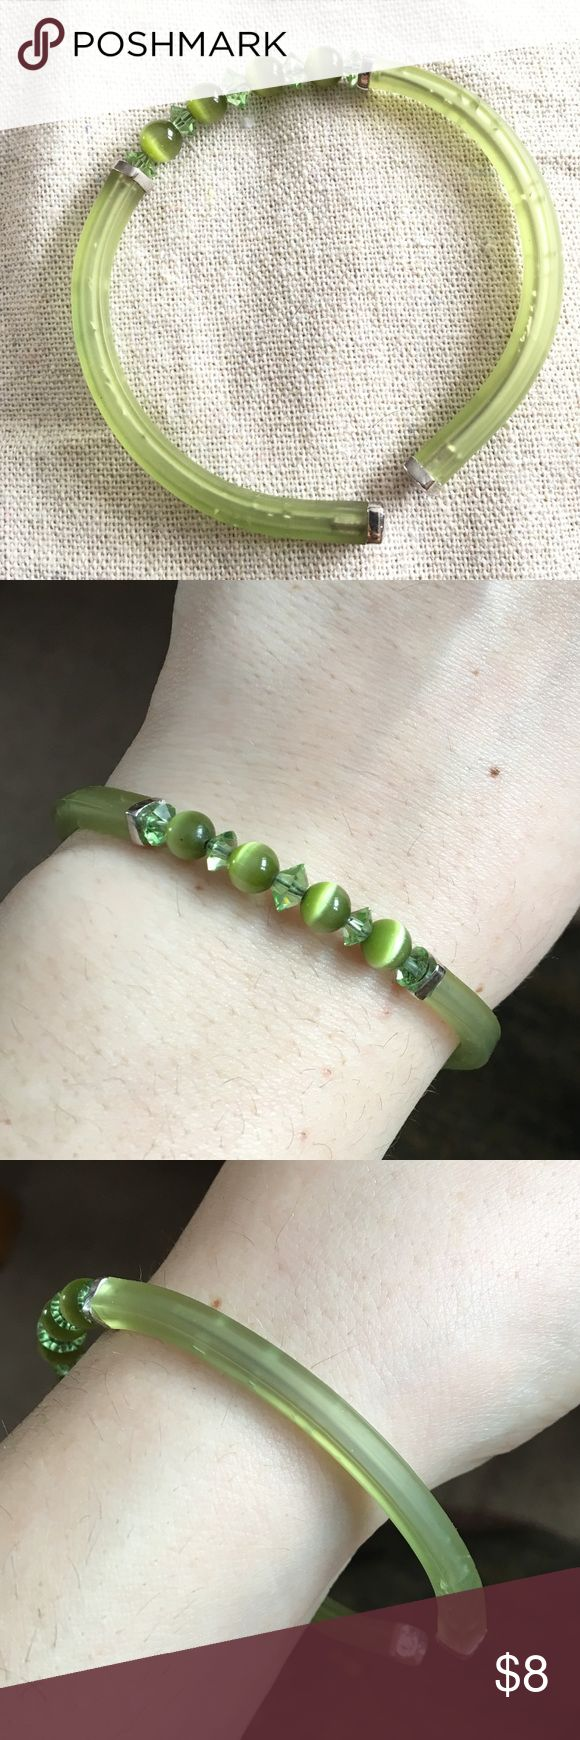 Genuine Swarovski Crystal Jelly Bracelet Green Swarovski jelly bracelet with Swarovski beads. Ends of the bracelet have the Swarovski swan stamp as seen in picture. Jelly part is damaged, has indentations and puncture marks. Still looks nice! Swarovski Jewelry Bracelets